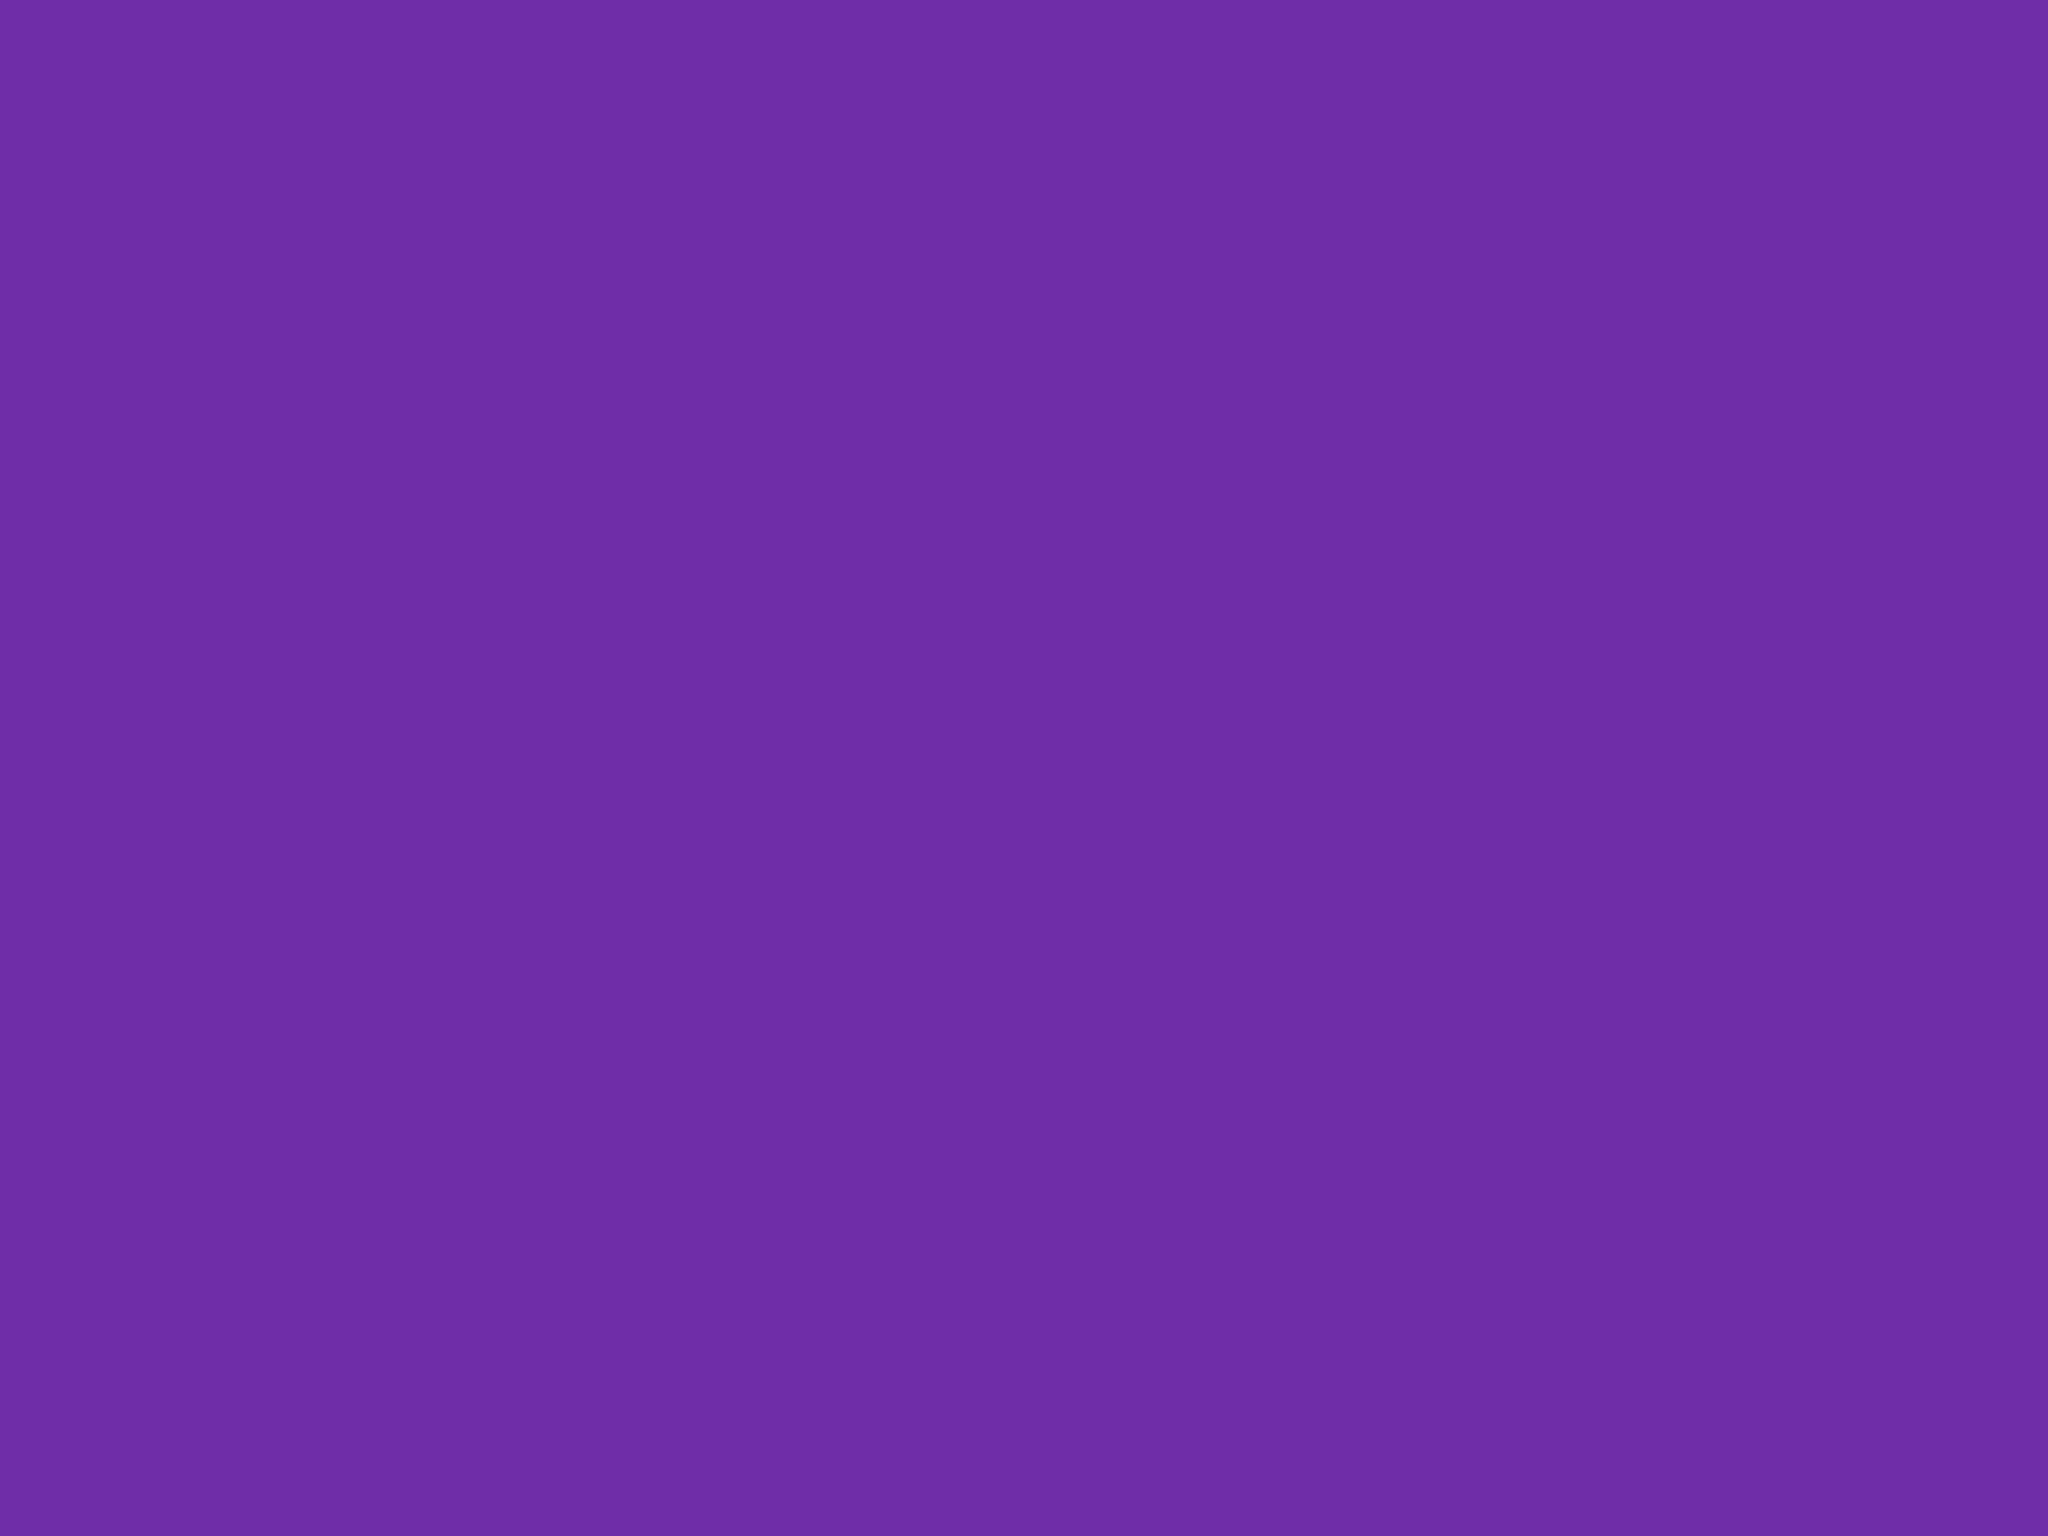 2048x1536 Grape Solid Color Background